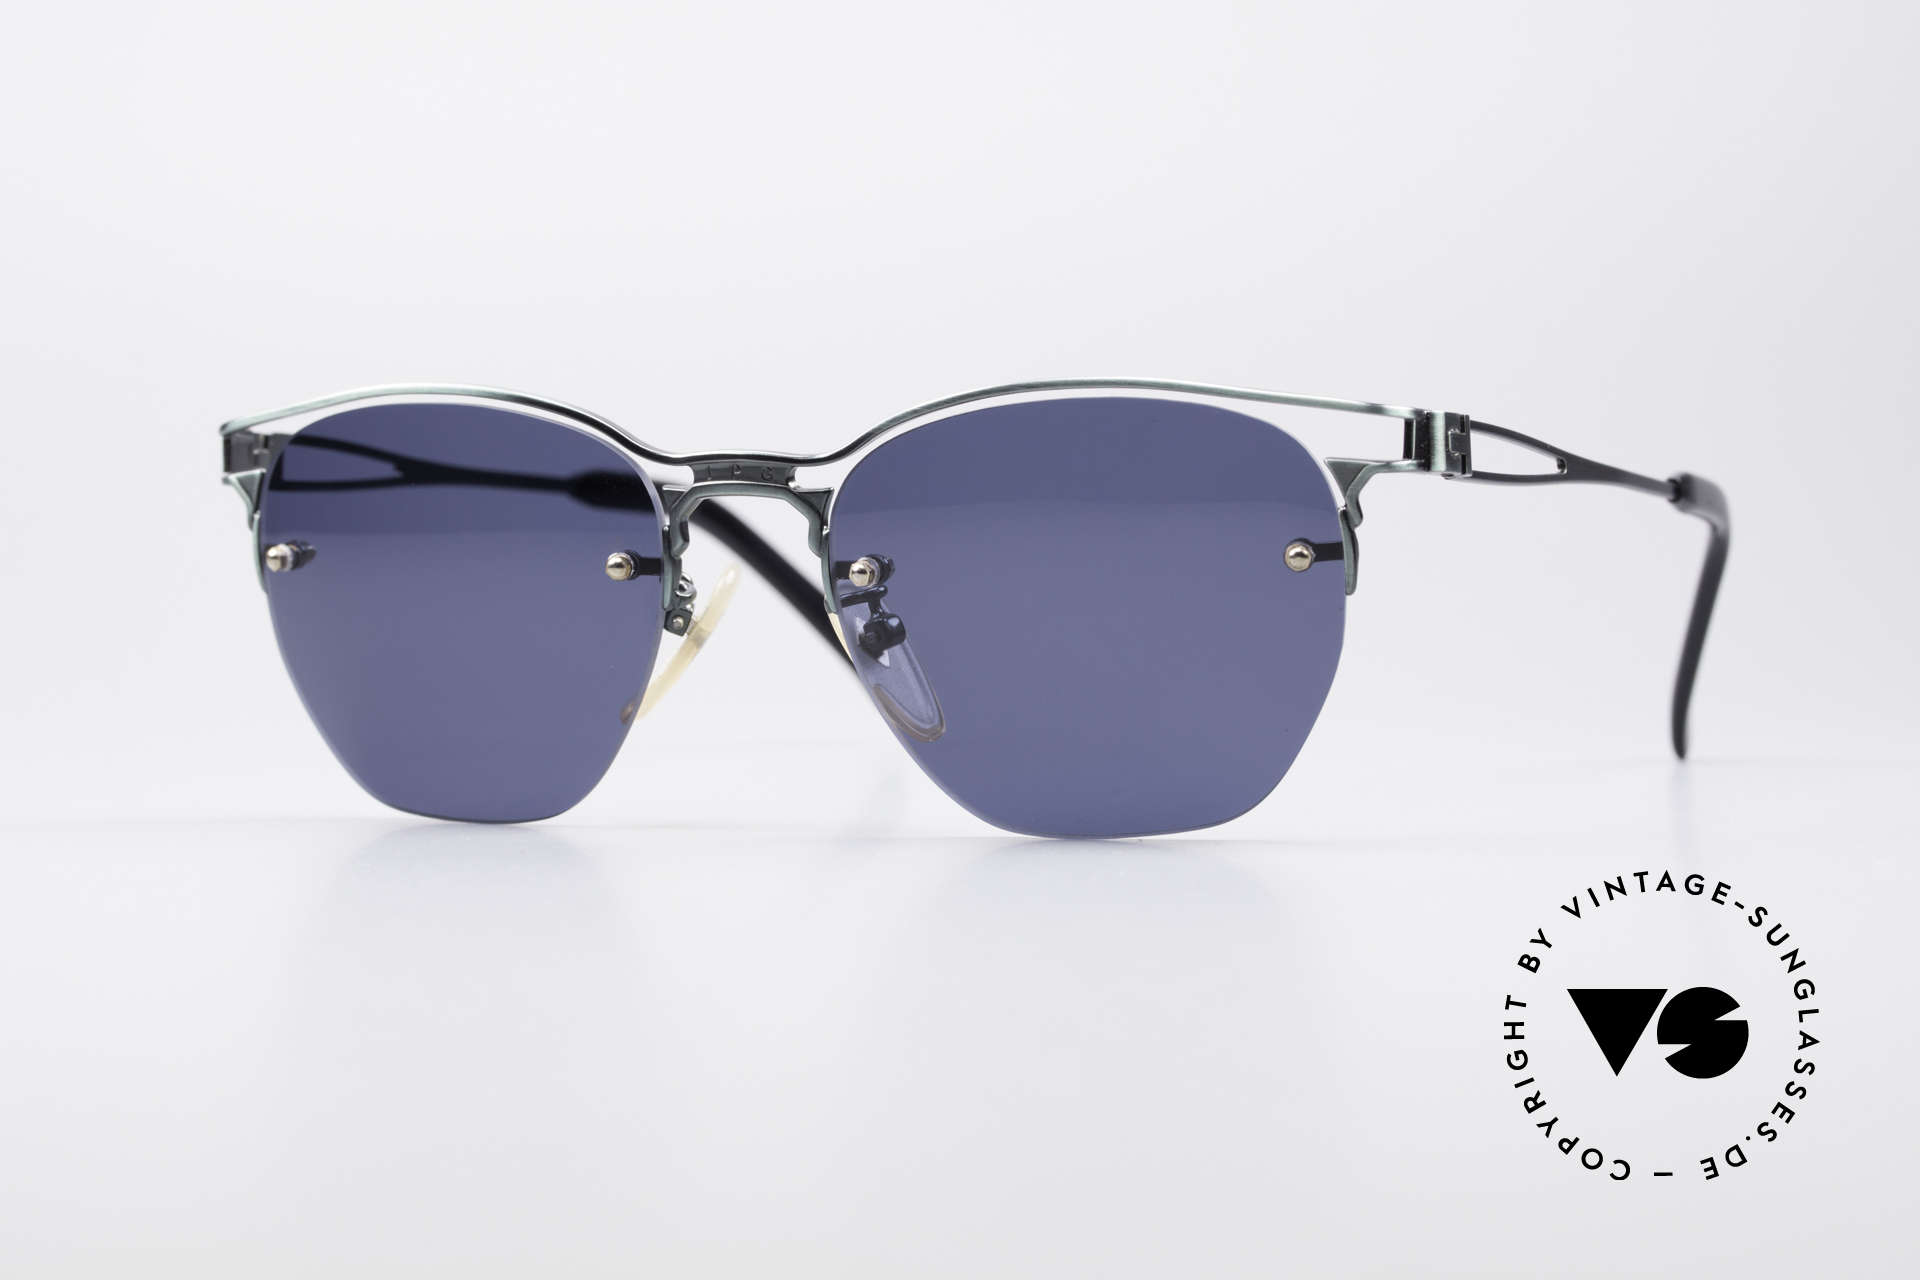 Jean Paul Gaultier 56-2173 True Vintage No Retro Shades, classic stylish Jean Paul GAULTIER designer shades, Made for Men and Women